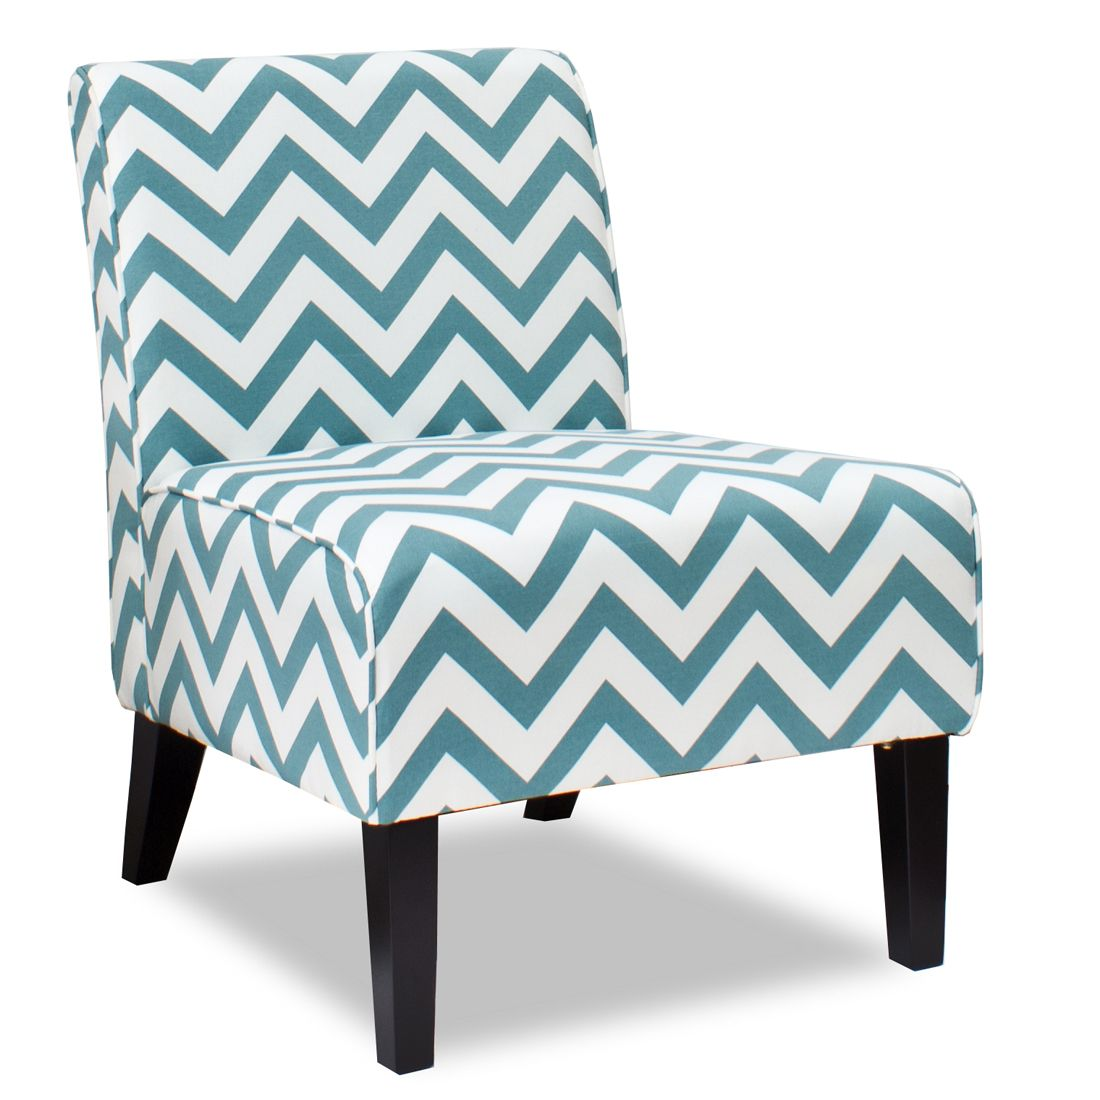 The Kevin chair with a Zigzag Turquoise fabric for $360